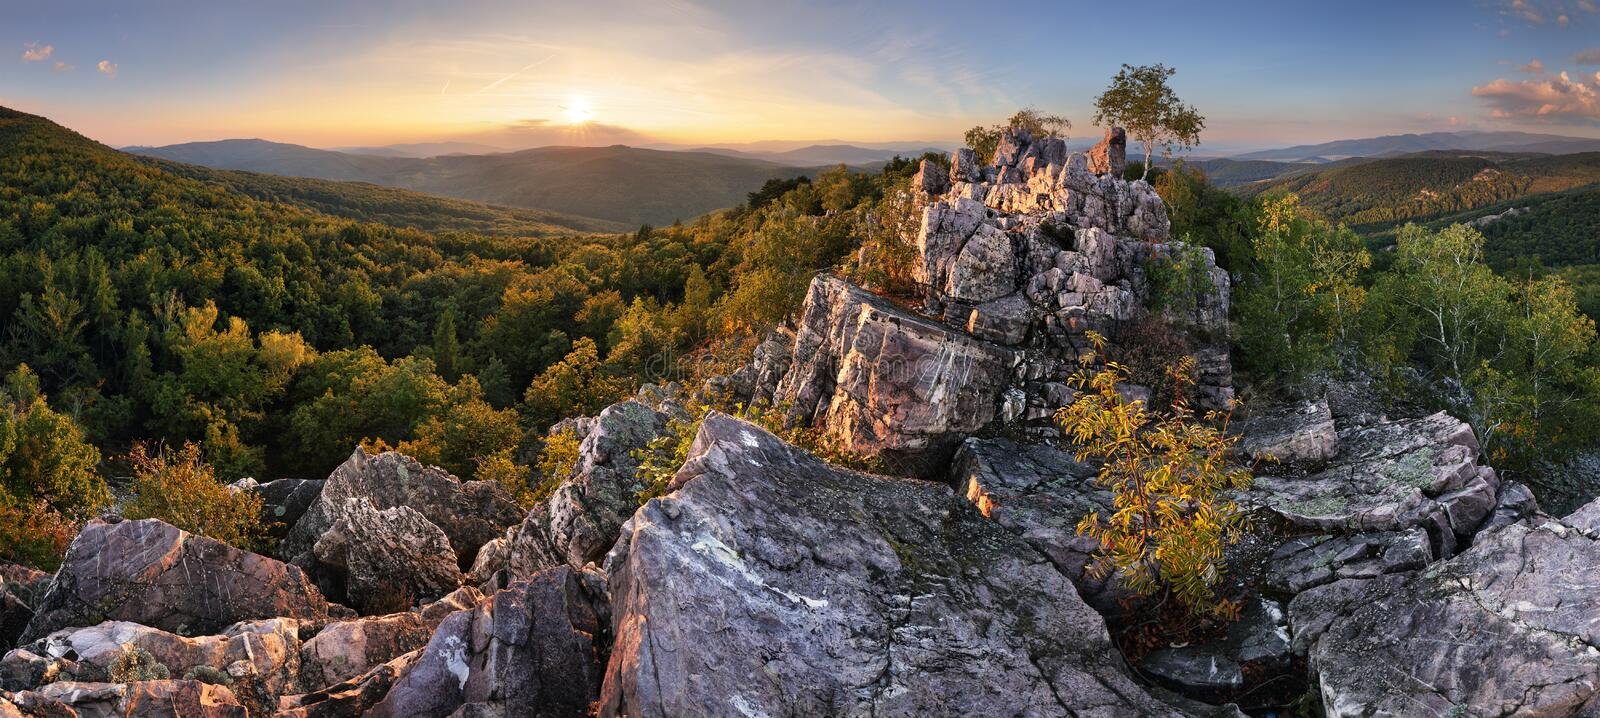 Sunset in forest with rocky mountain hill.  royalty free stock photo